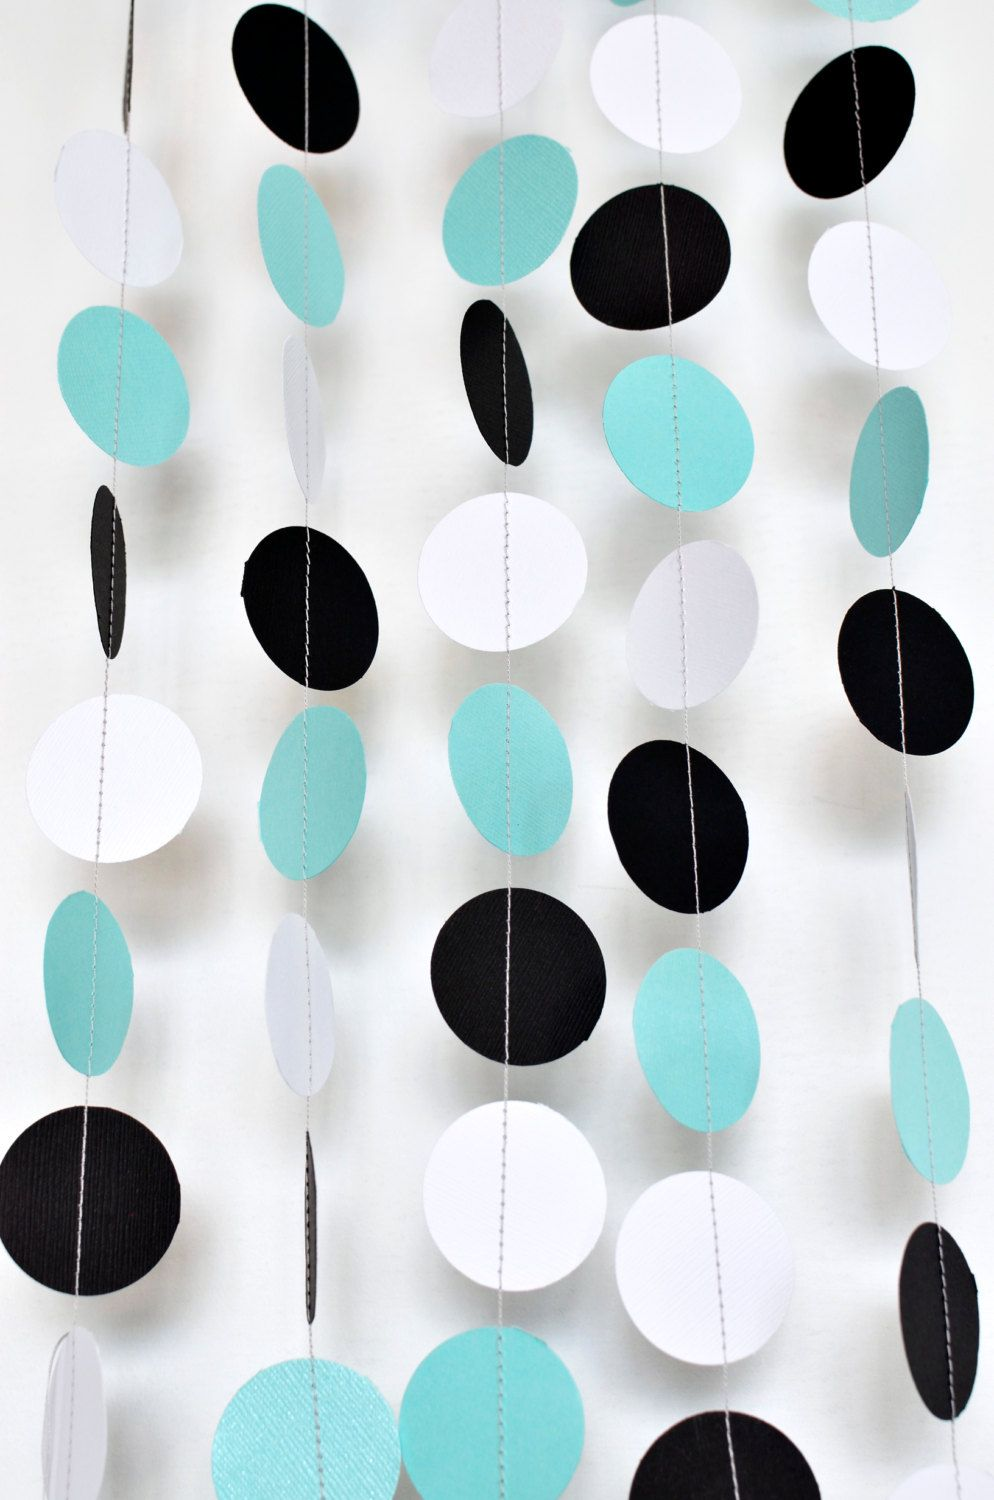 Blue and black wedding decor  SHIPPING NOTES PLEASE LEAVE EVENT DATEDATE NEEDED IN NOTES TO